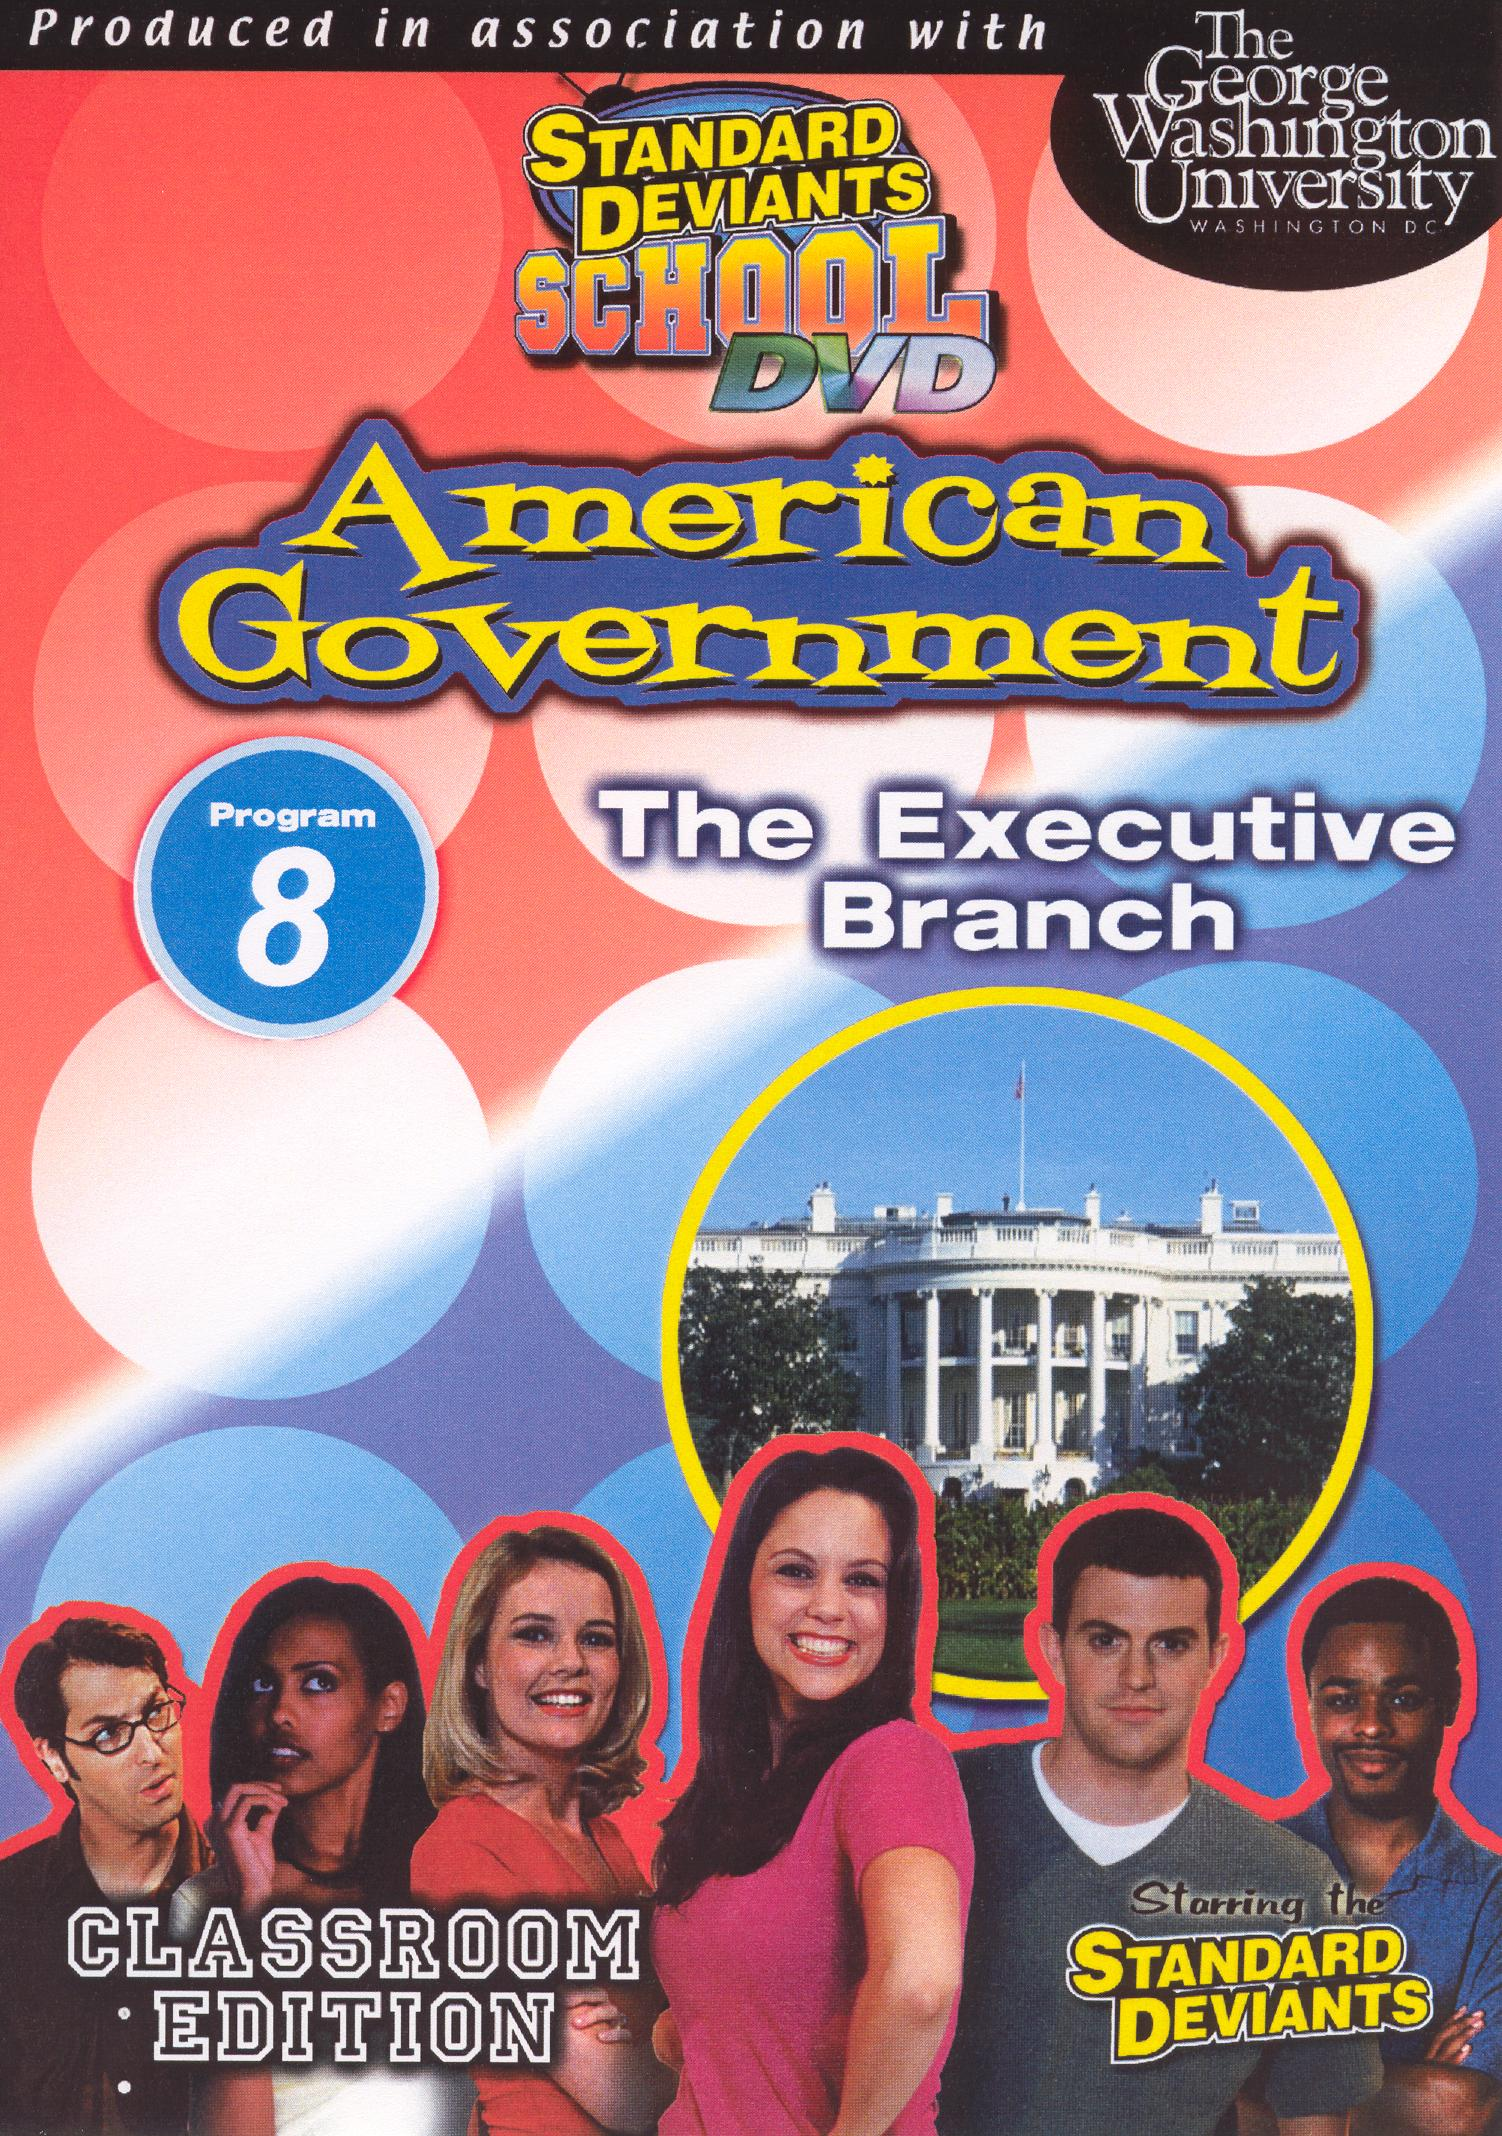 Standard Deviants School: American Government, Module 8 - The Executive Branch